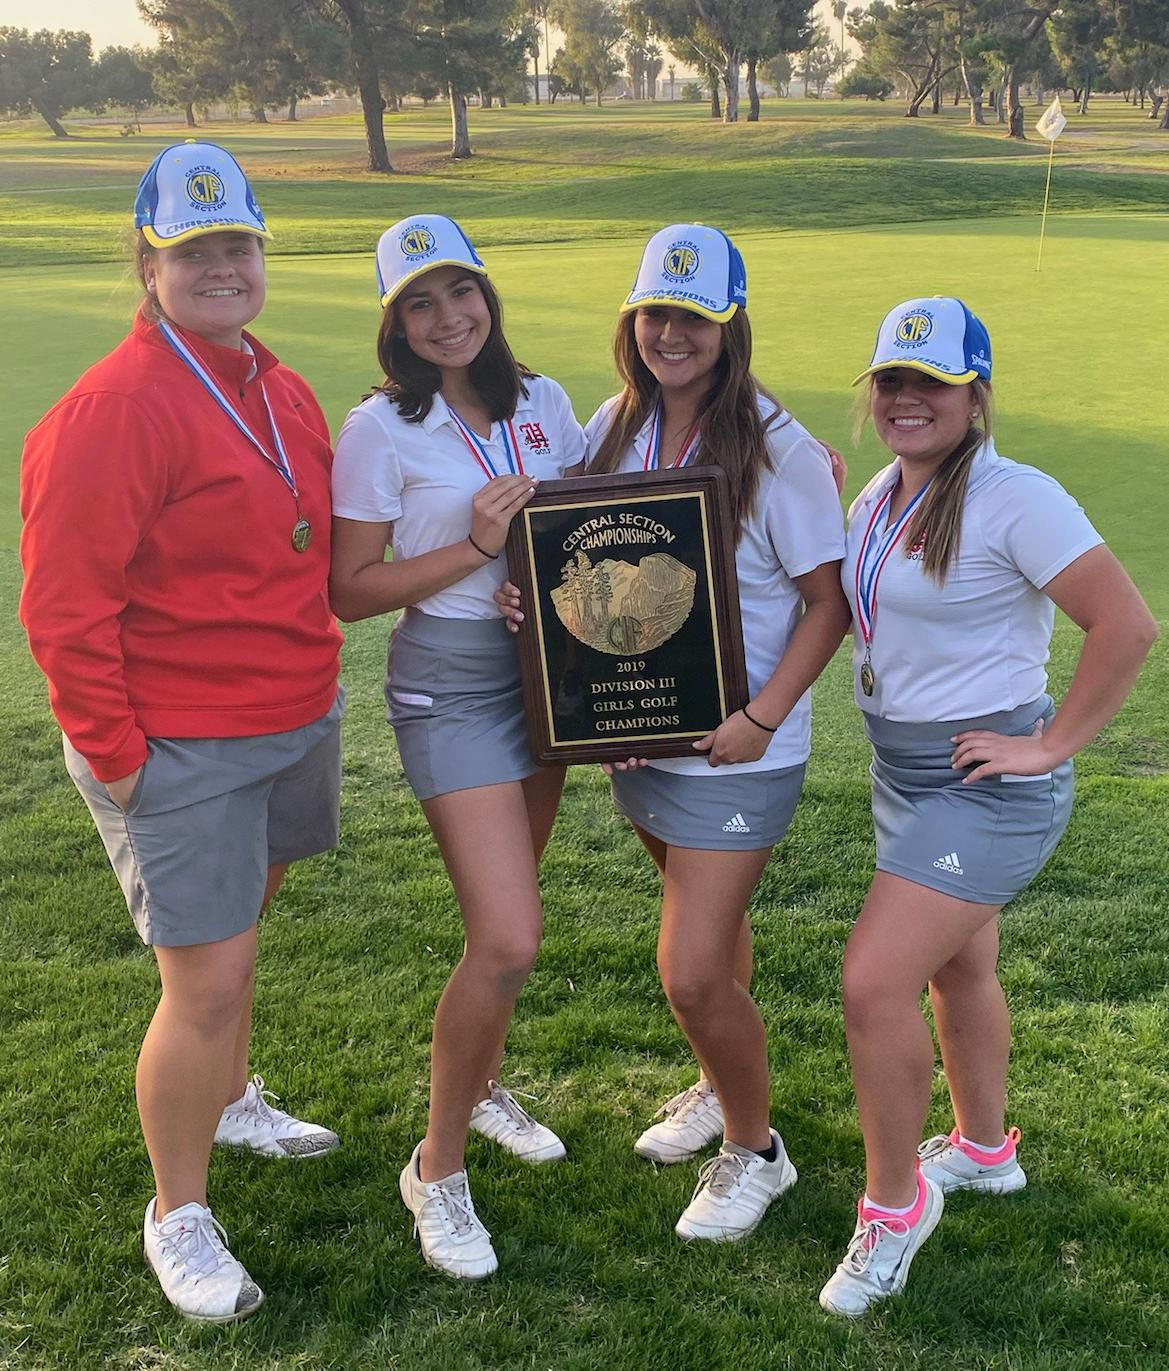 Championship swing: Hanford girls golf wins first-ever Central Section title